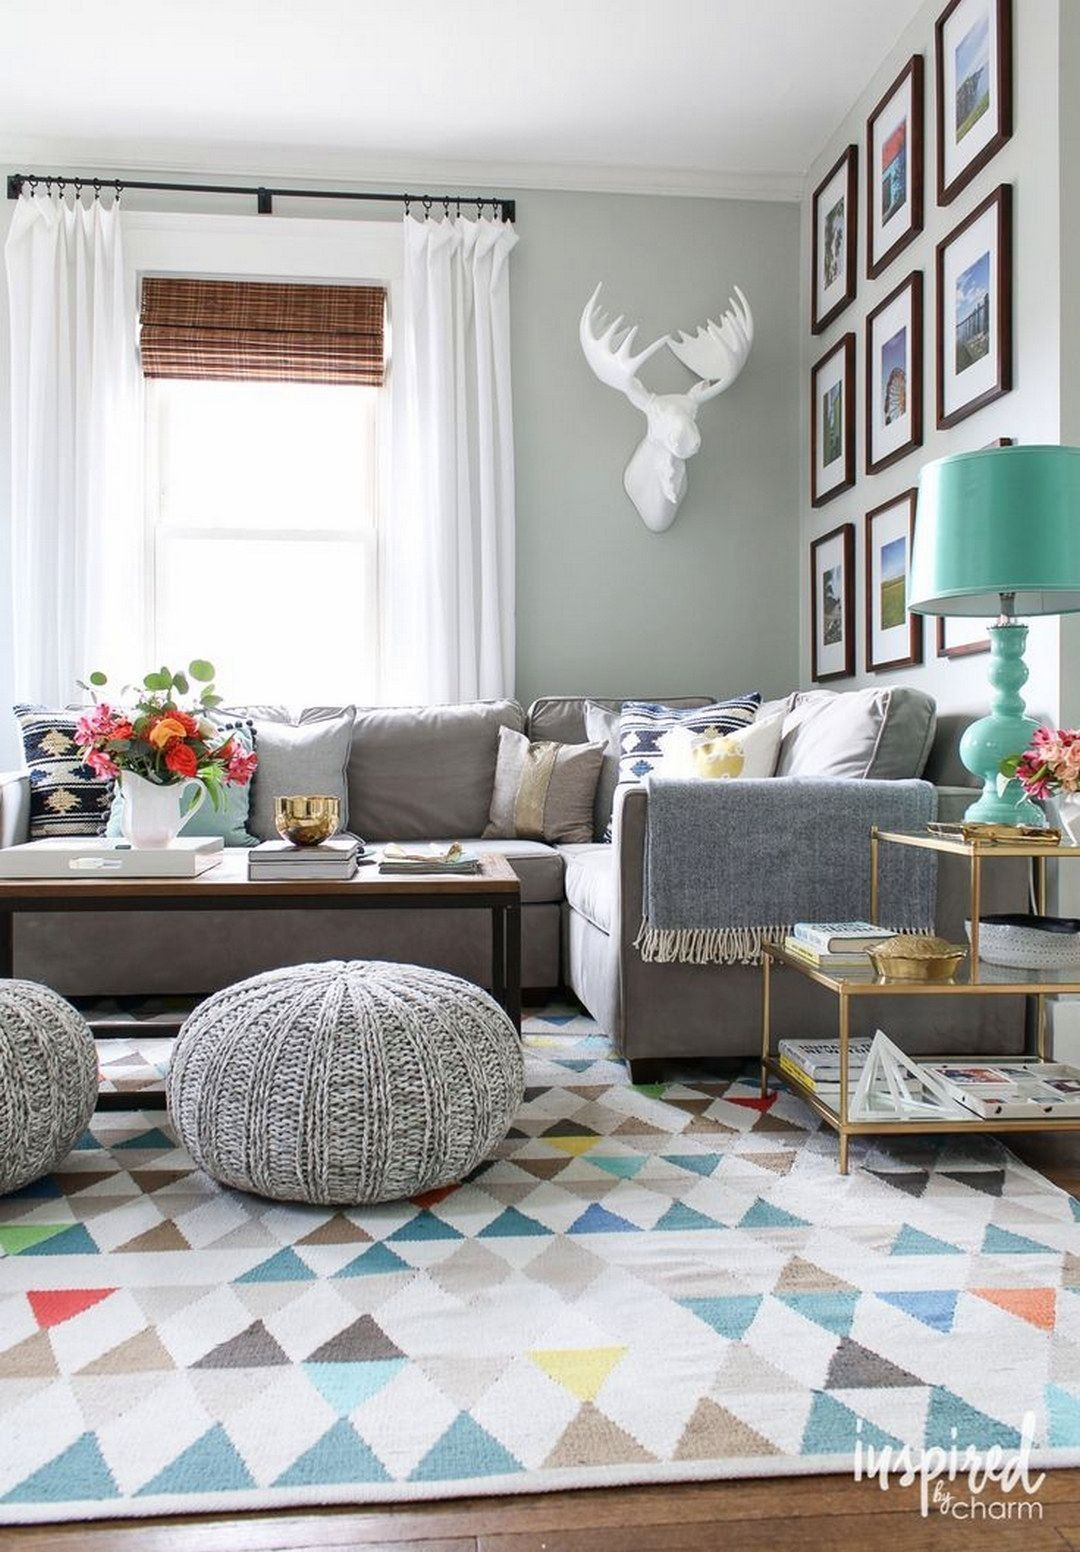 Pin By D Lloyd On House Decor Home Projects Family Friendly Living Room Kid Friendly Living Room Spring Living Room